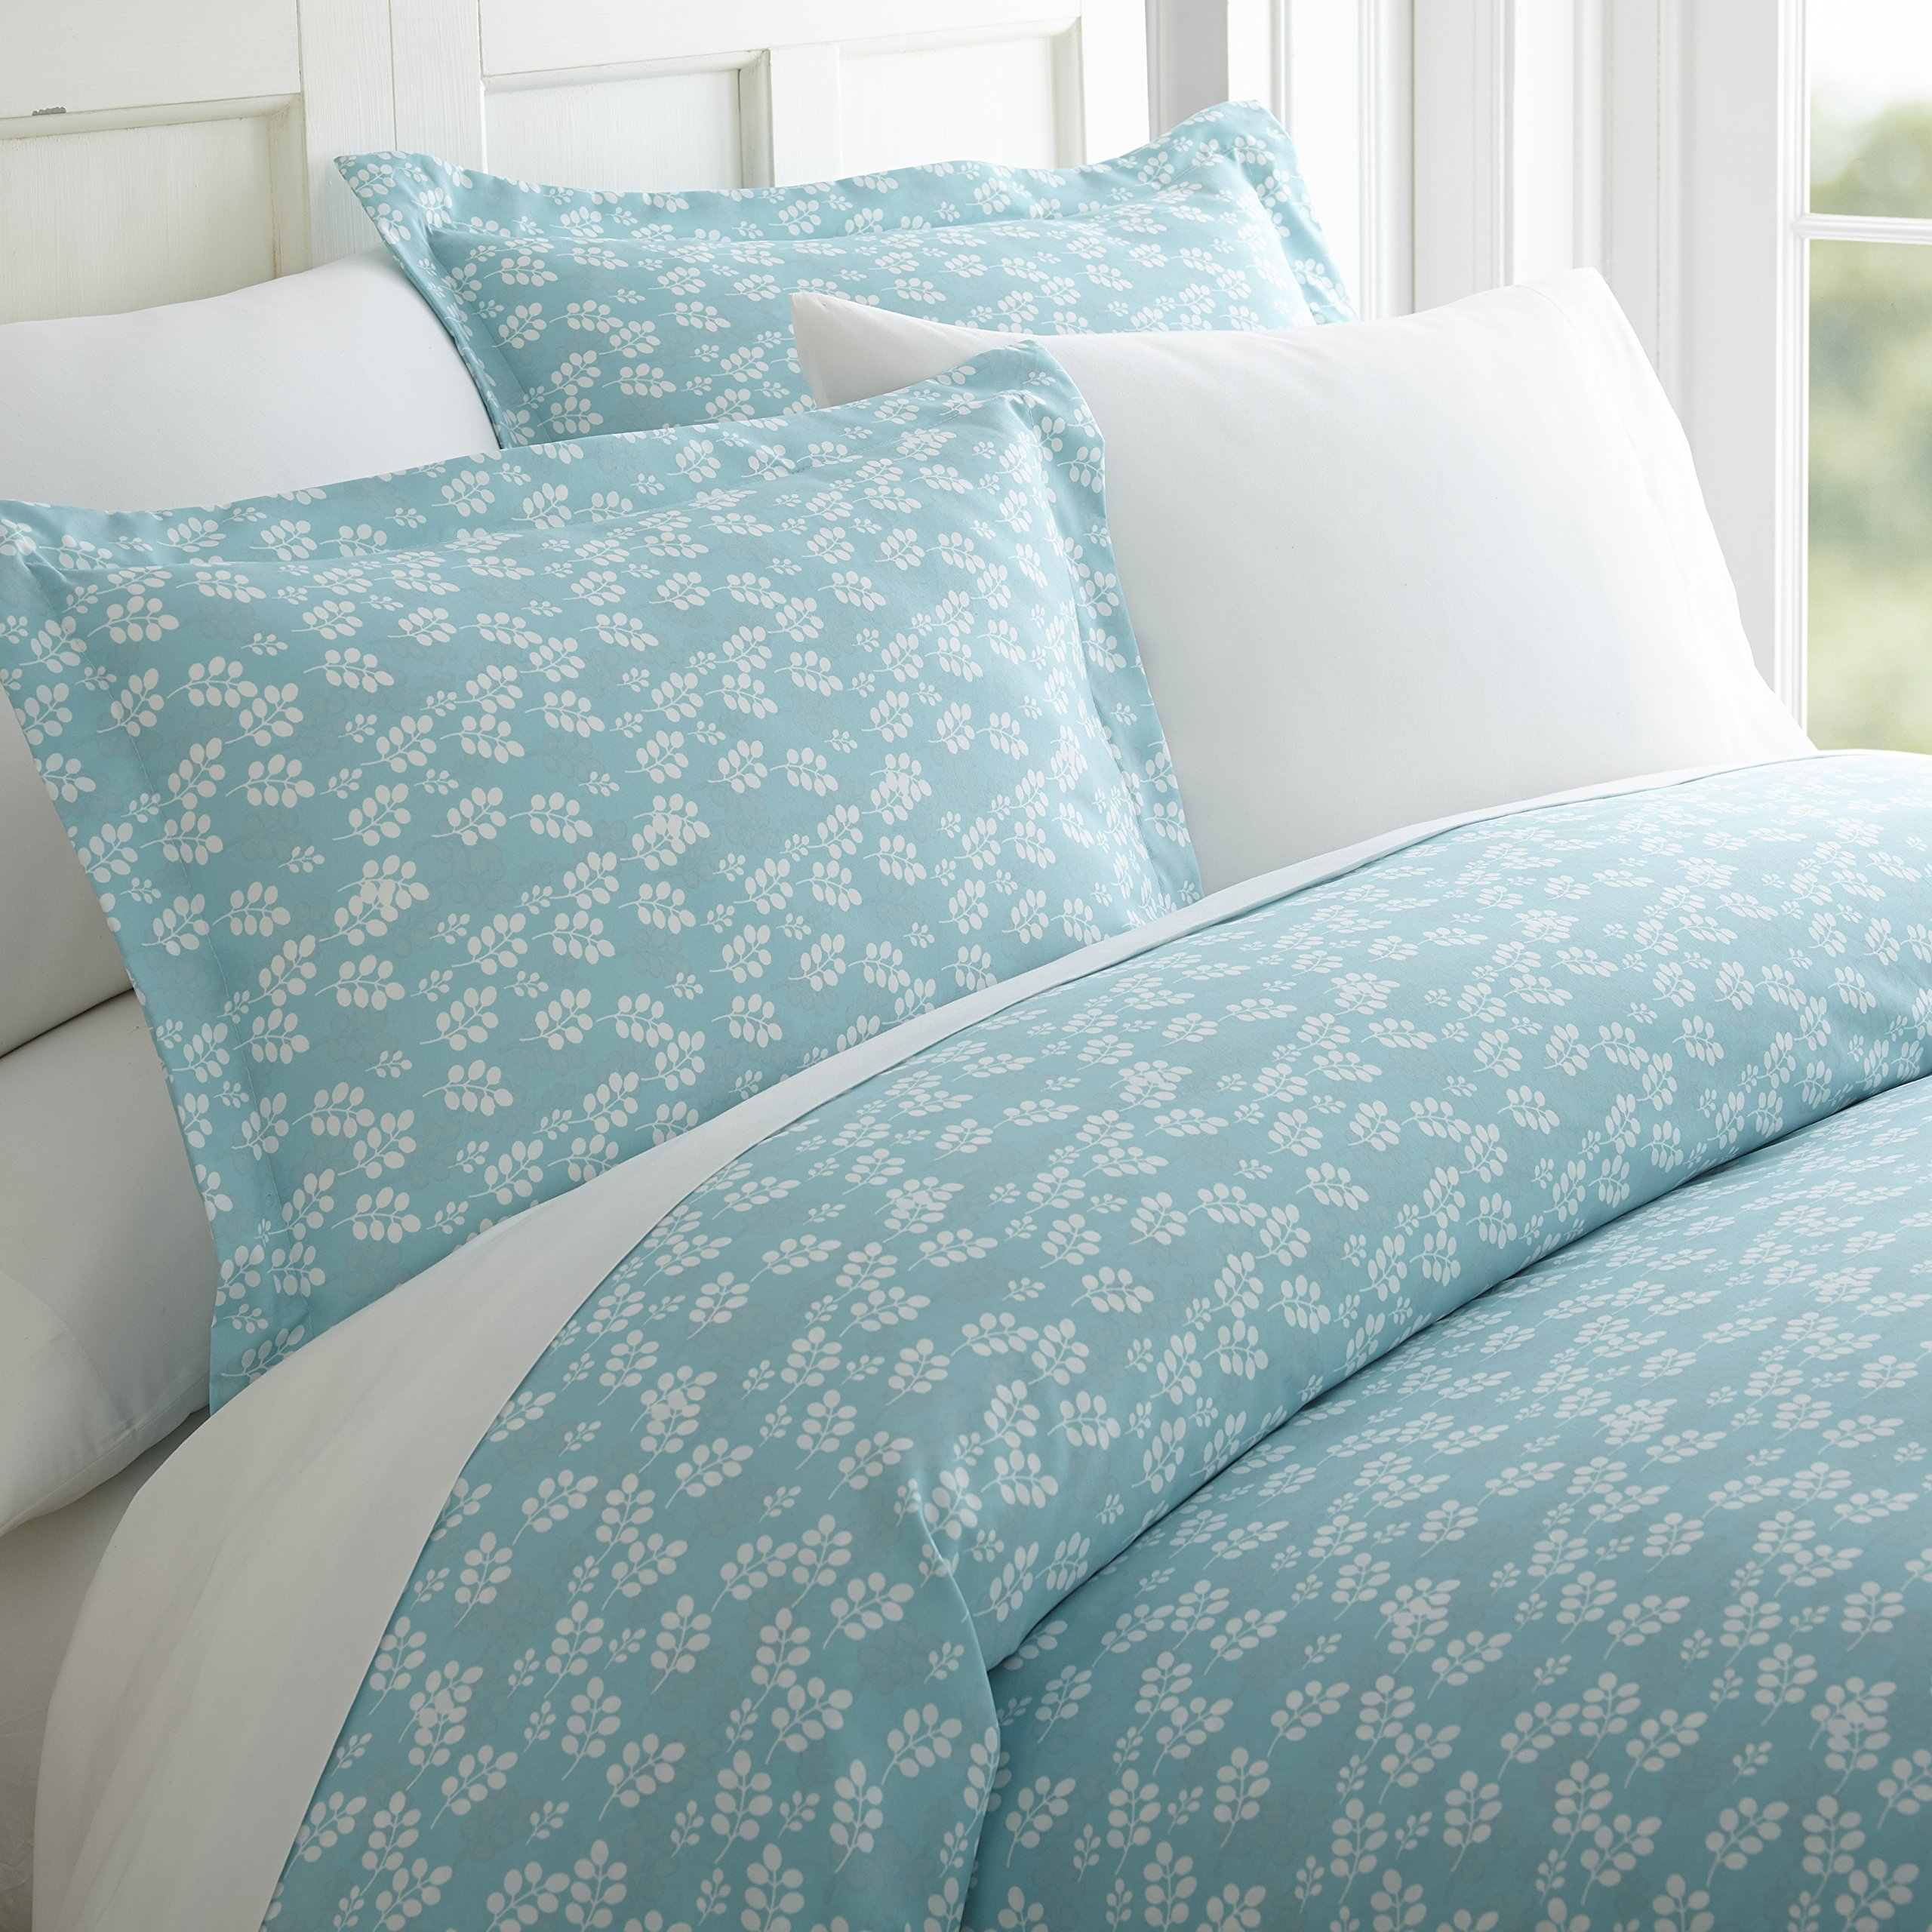 ienjoy Home 3 Piece Wheatfield Patterned Home Collection Premium Ultra Soft Duvet Cover Set, Twin, Pale Blue